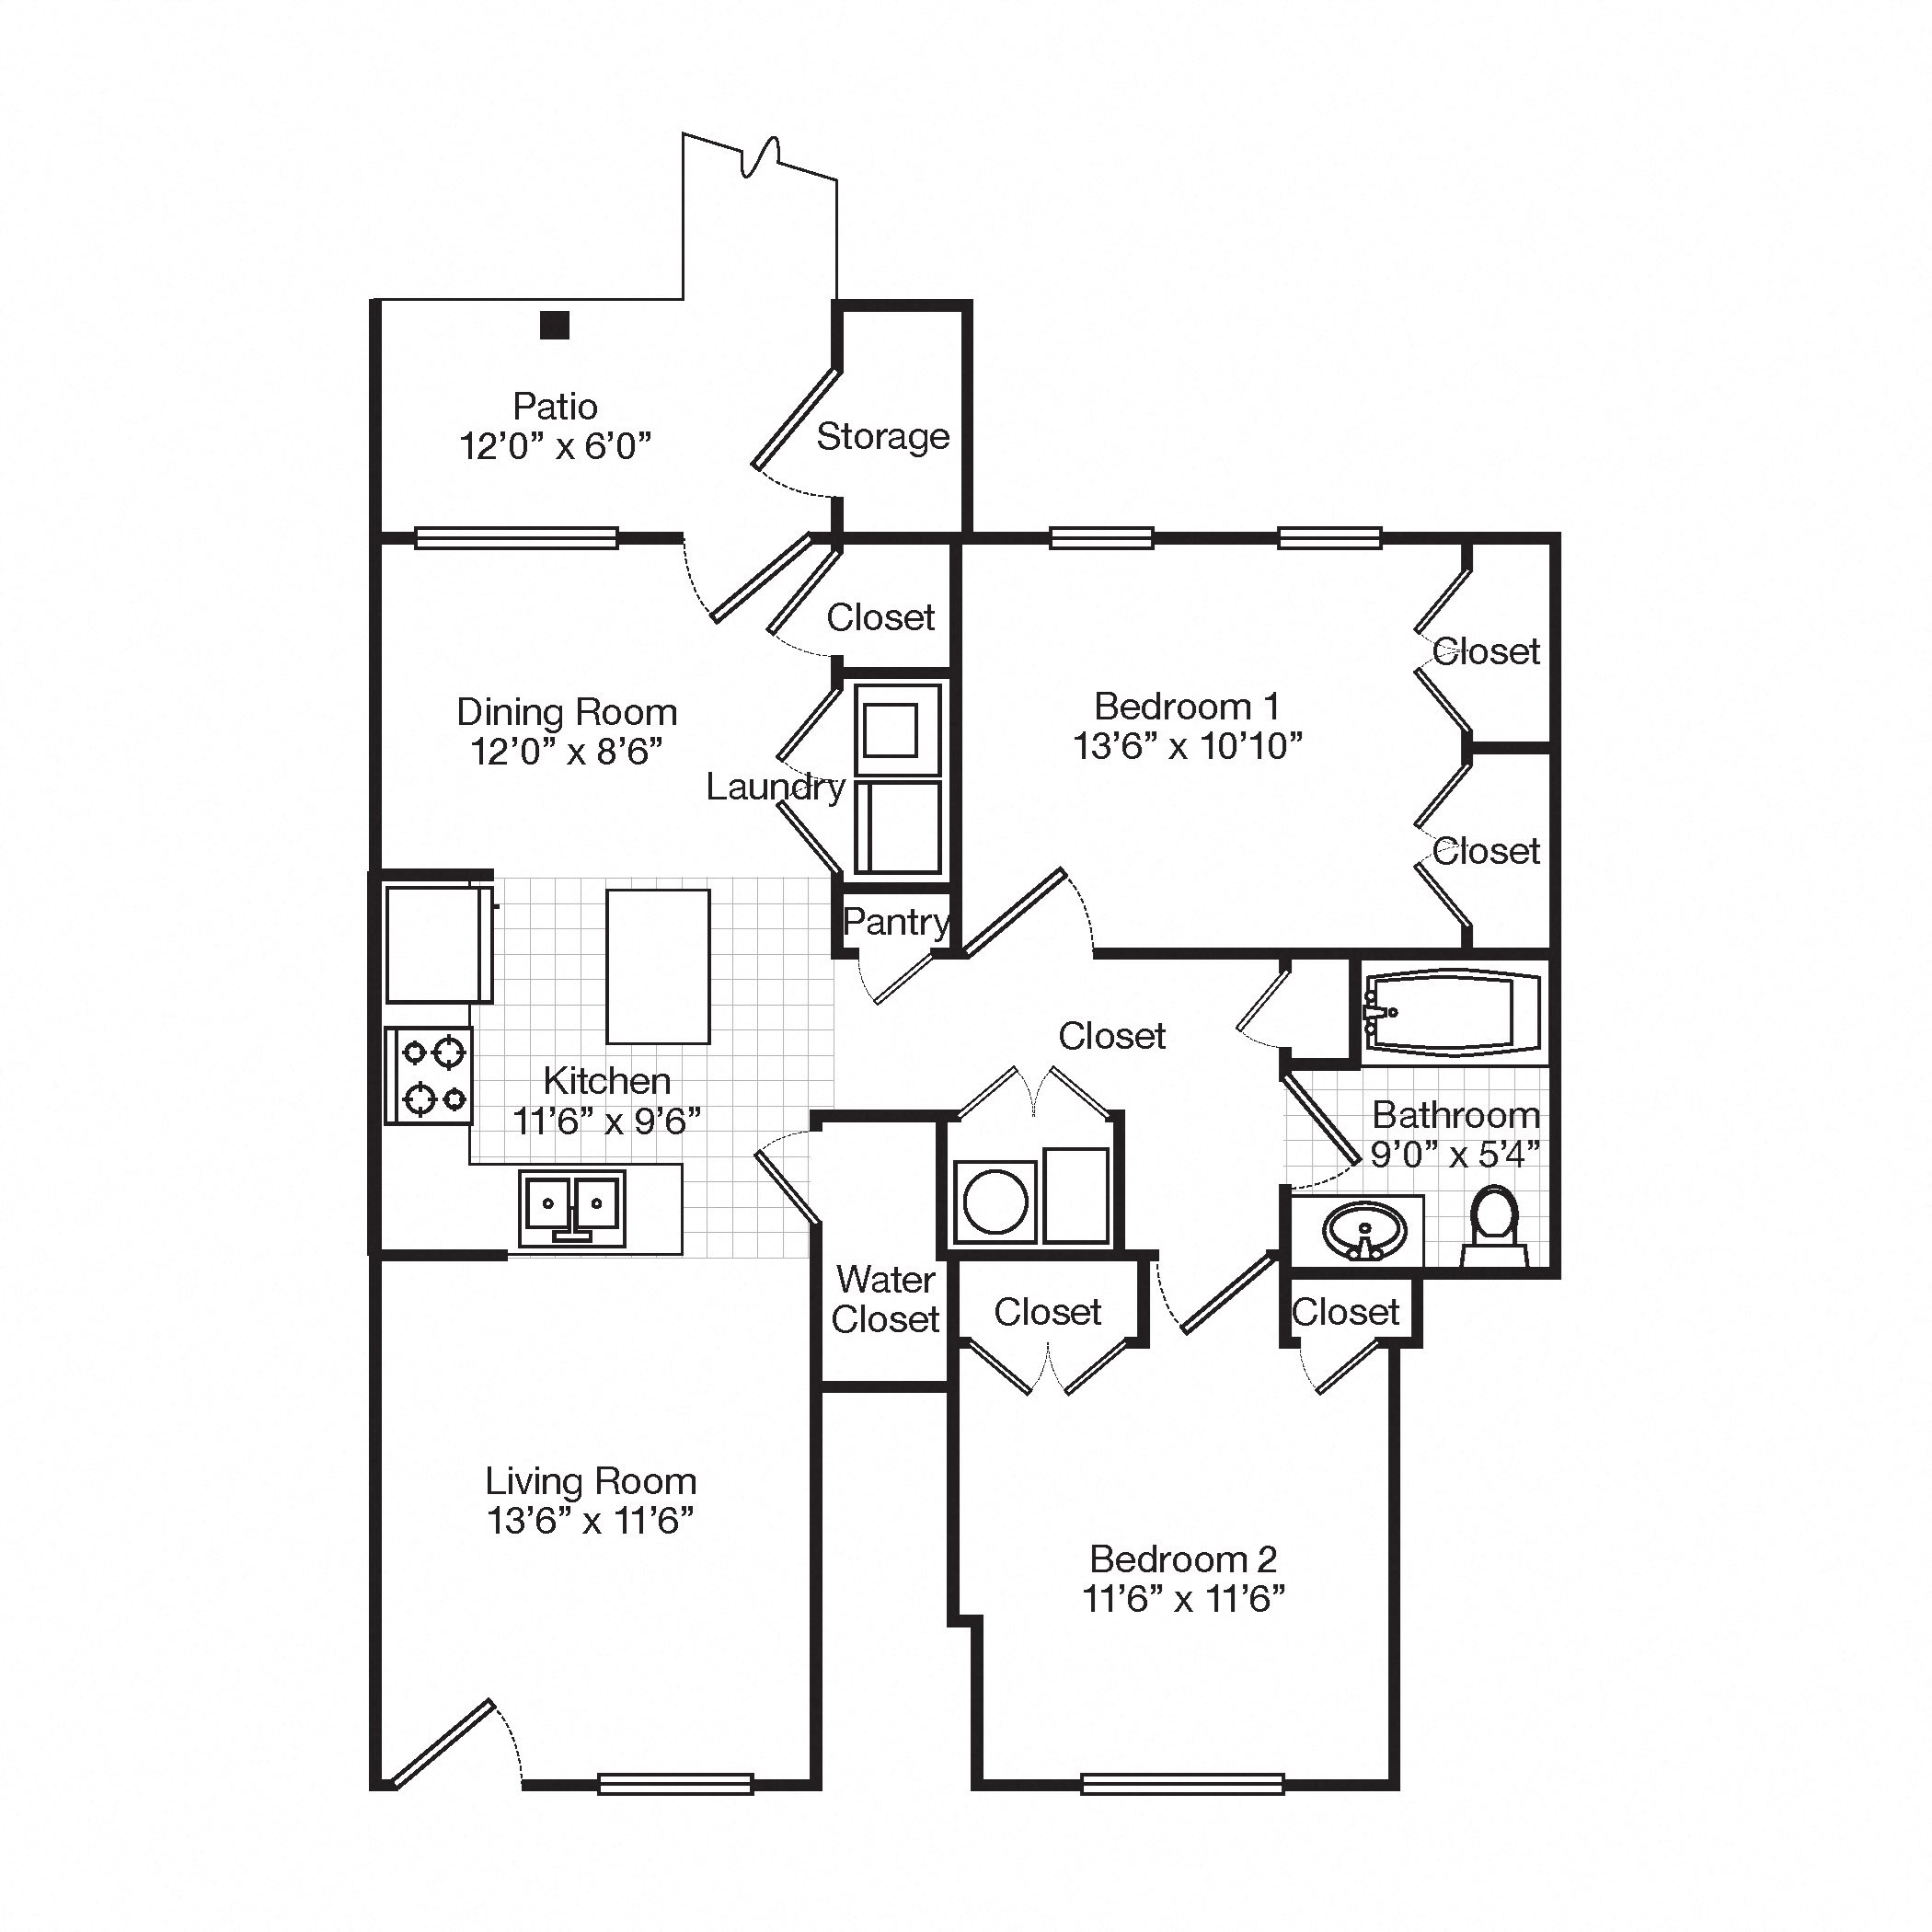 Bedford Hill Apartments: Floor Plans Of Bedford Hill Apartments In Pittsburgh, PA